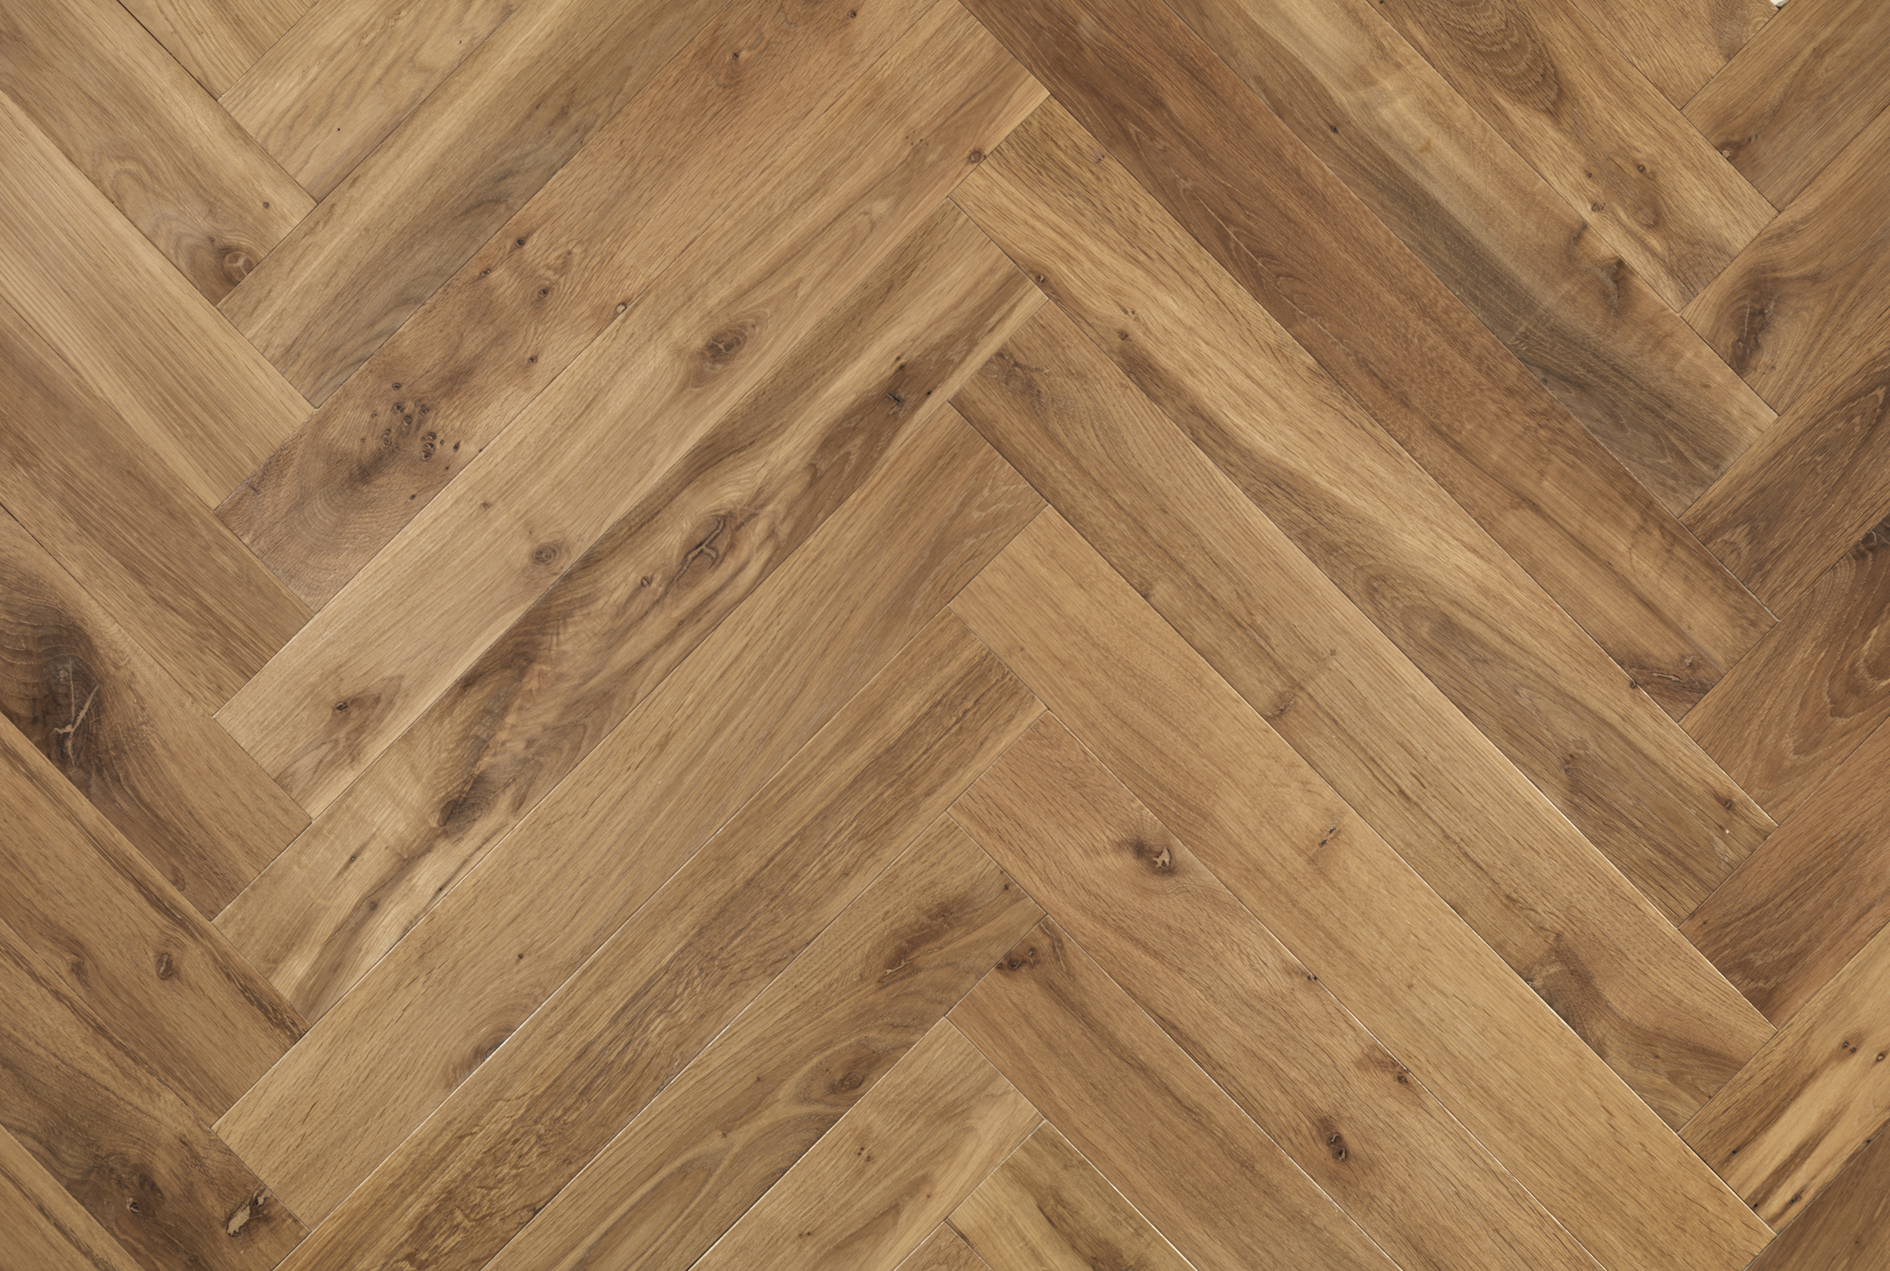 Parqet Reclaimed Wood Parquet Old Wood By Devon Anddevon